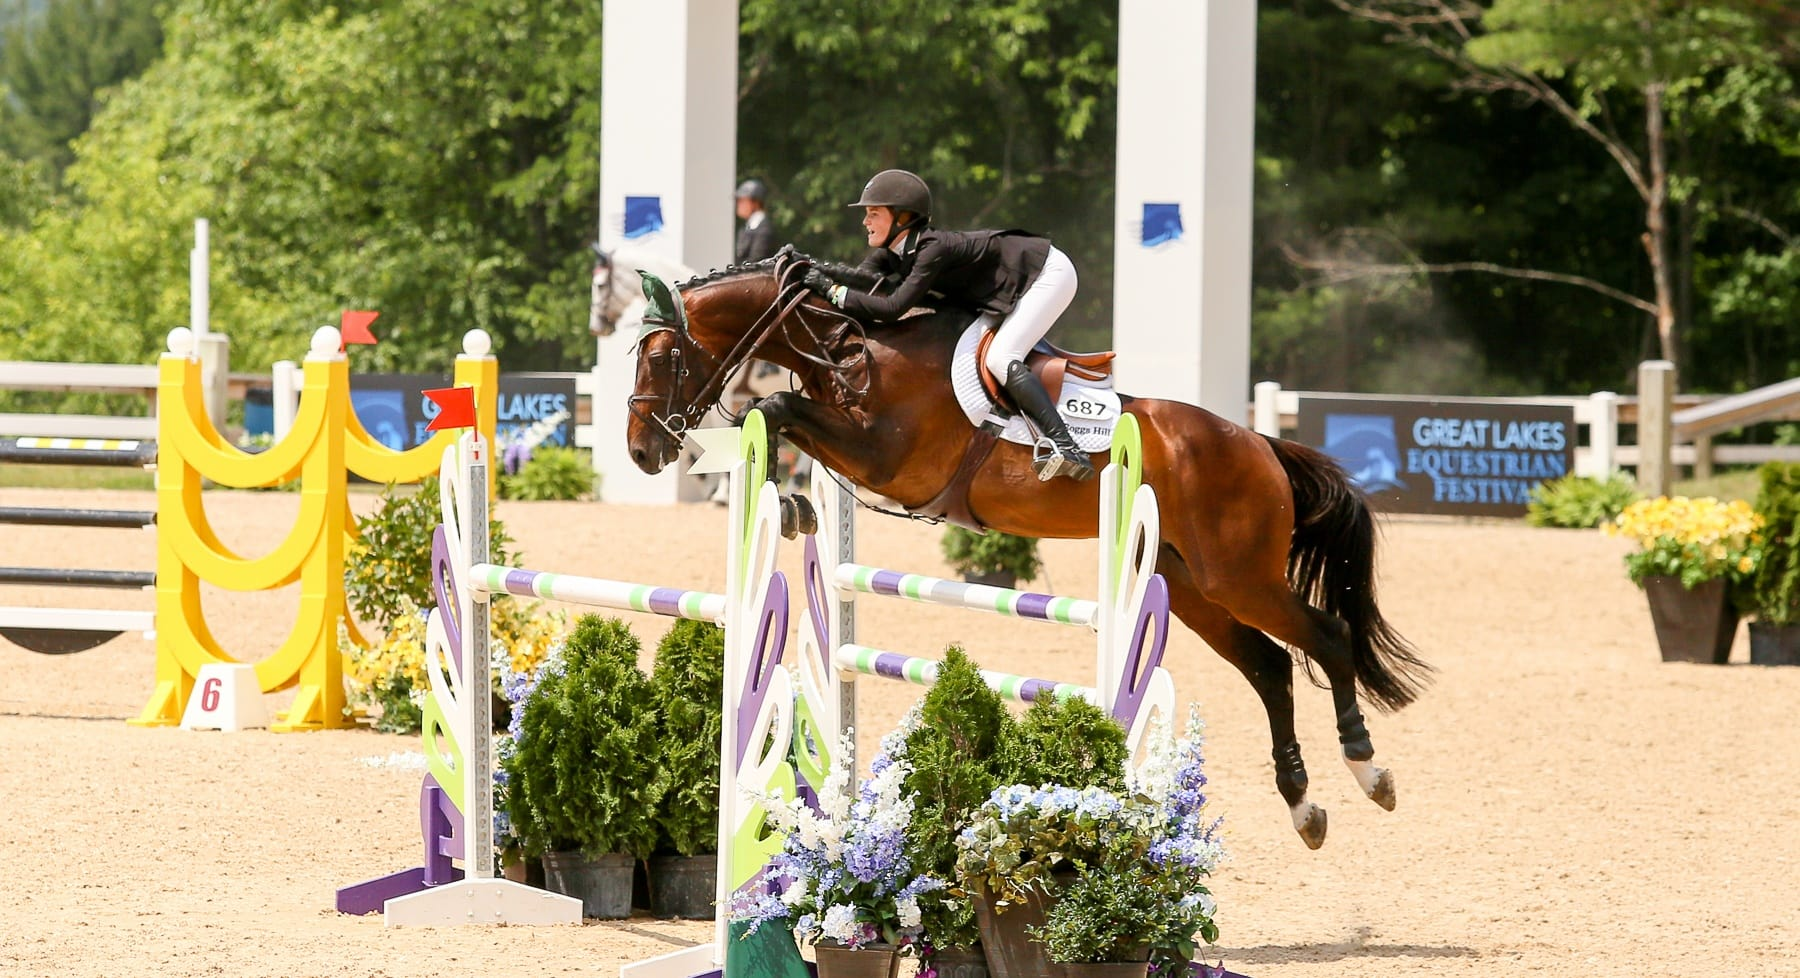 Great lakes equestrian festival 2016 in traverse city for Craft shows in traverse city mi